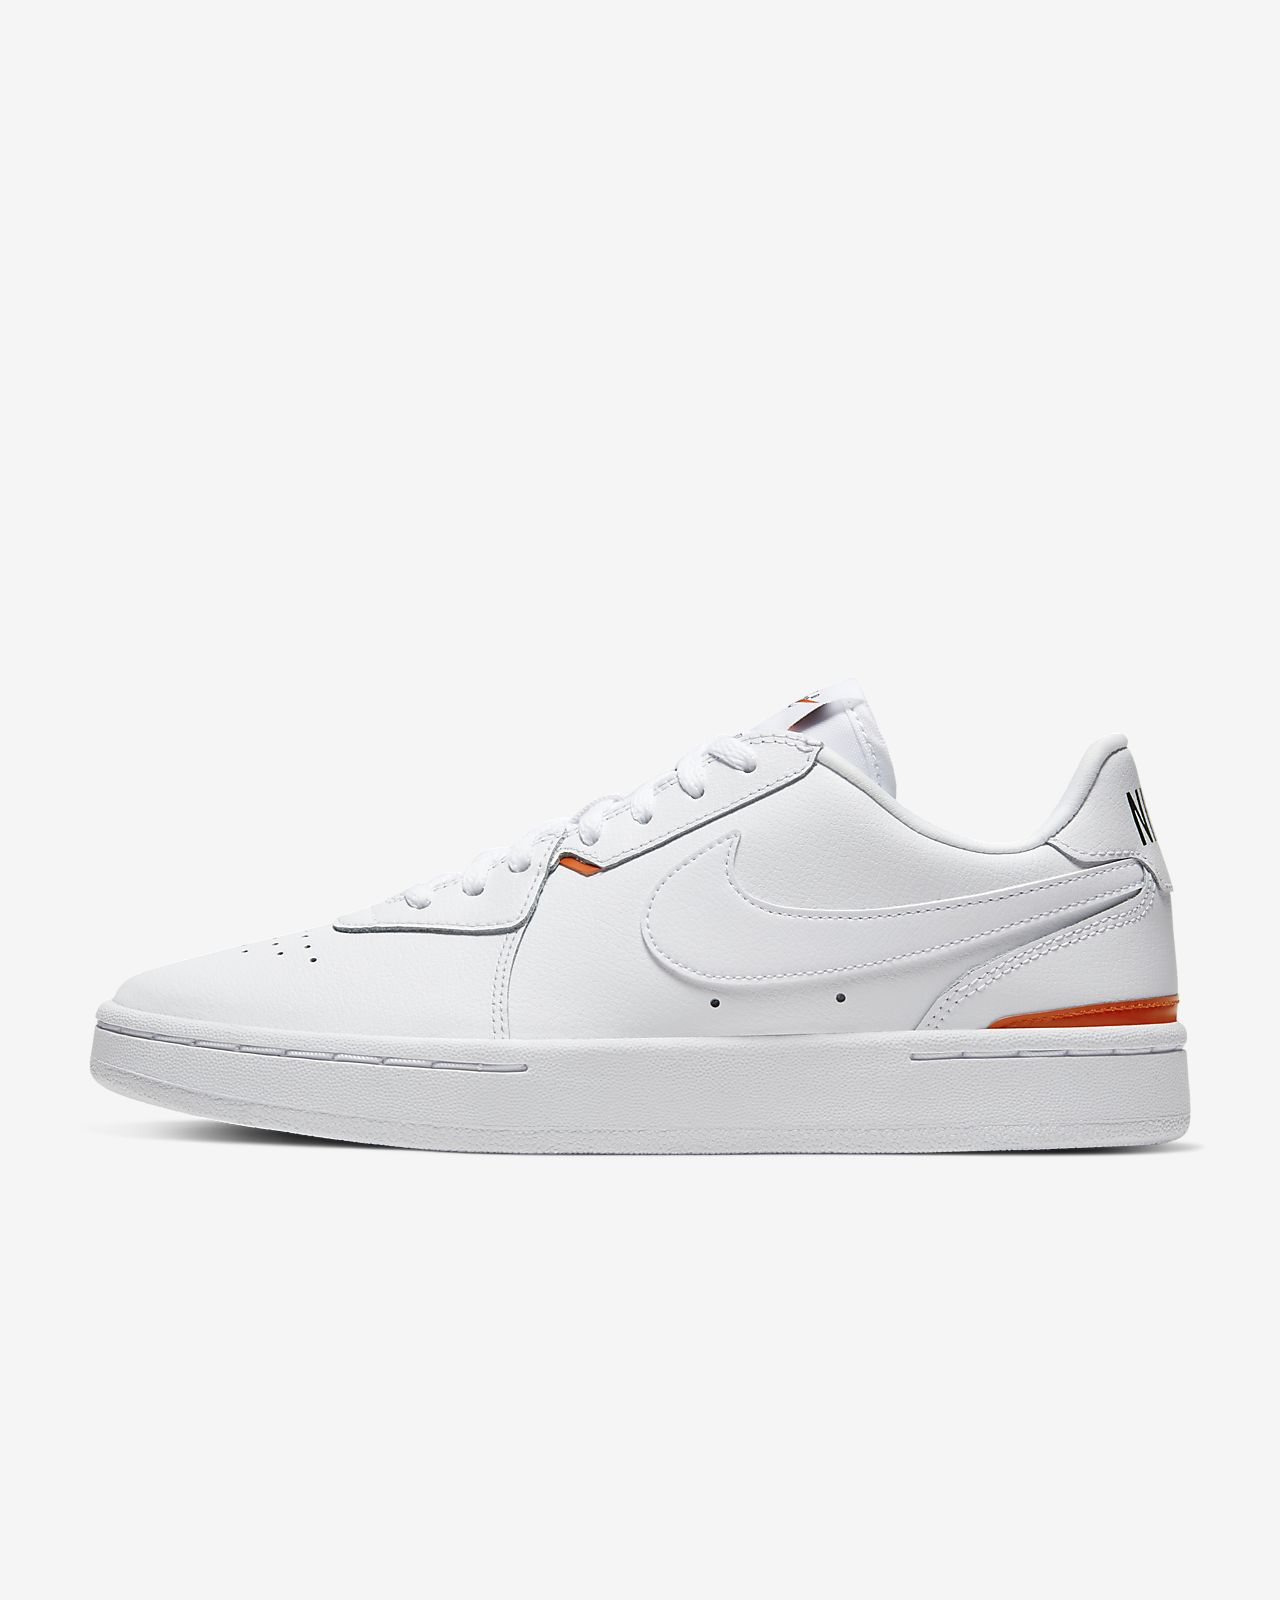 NikeCourt Blanc Women's Shoe